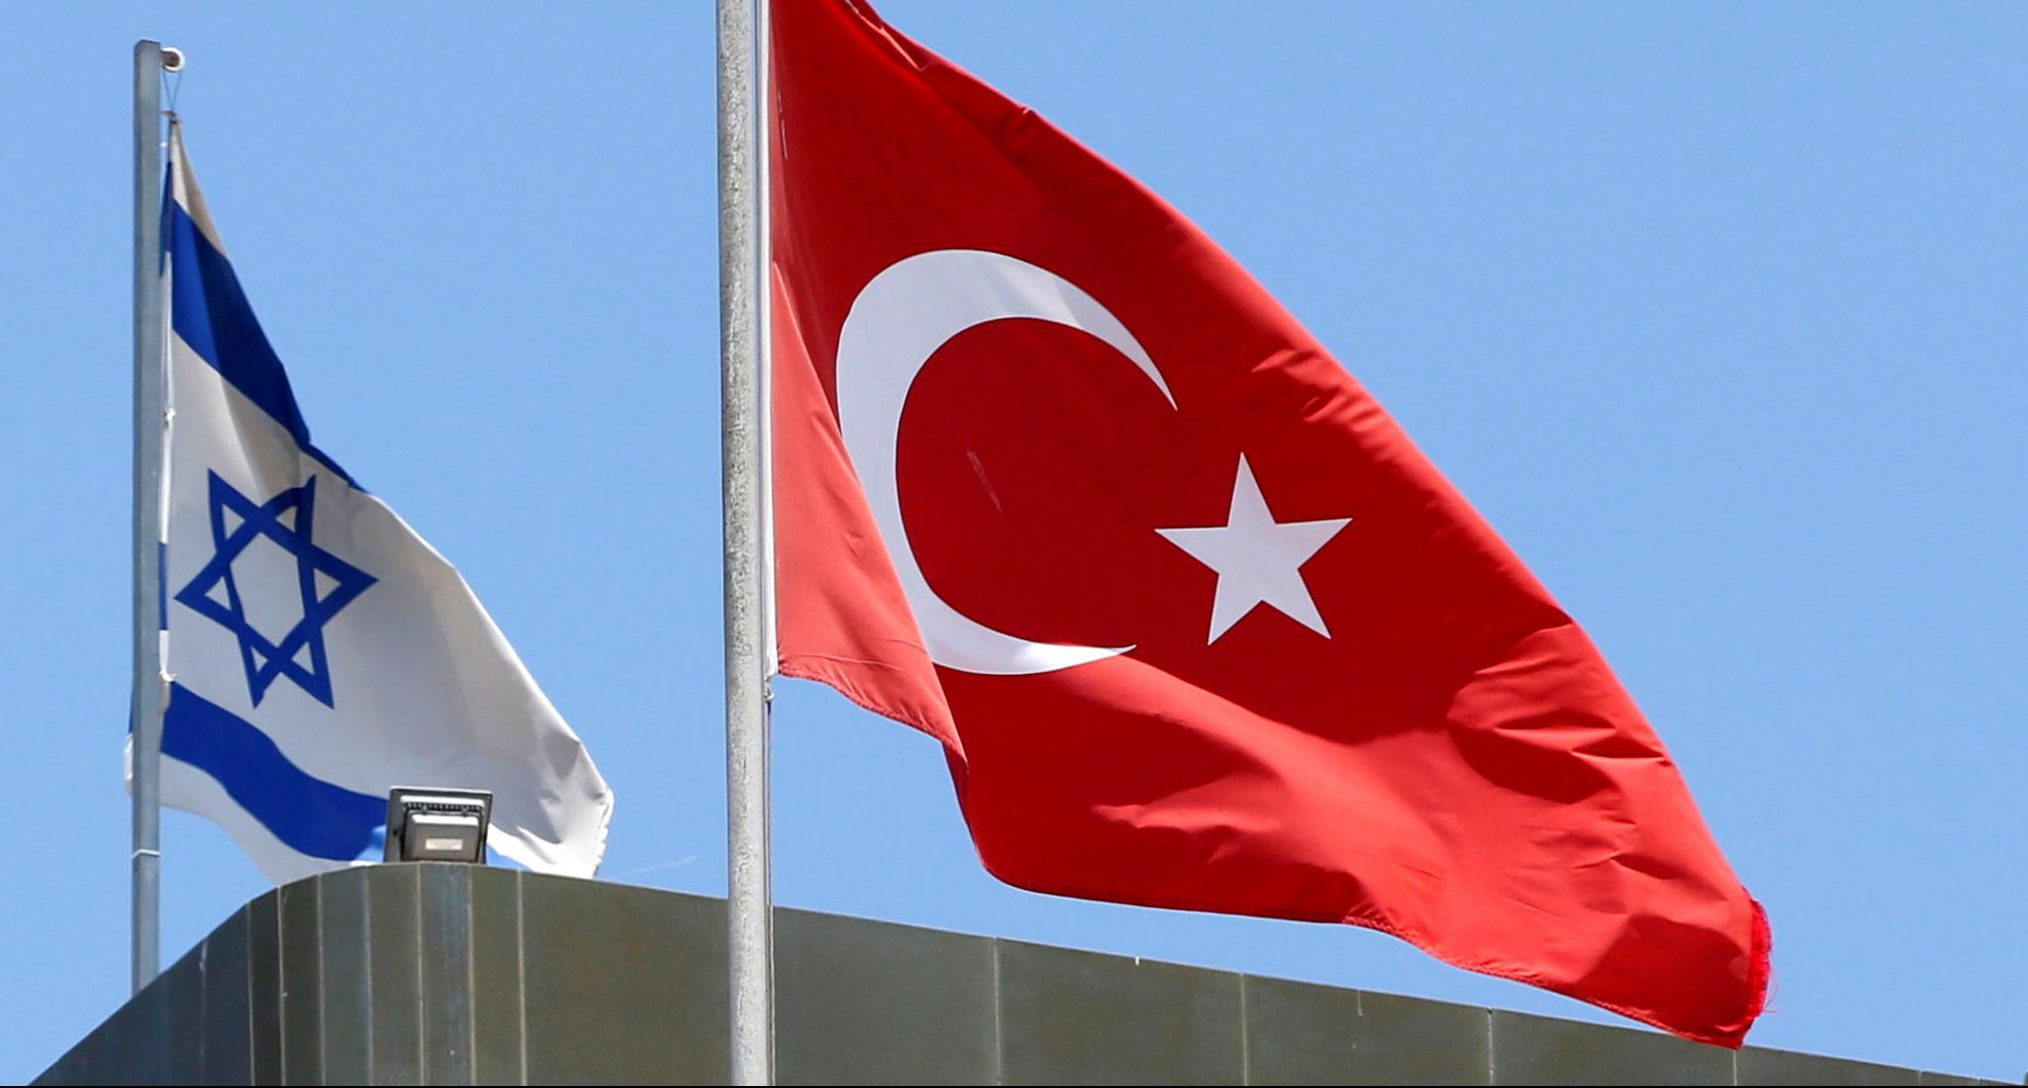 Israel summons Turkish diplomat and complains for the mistreatment of theirs in Turkey